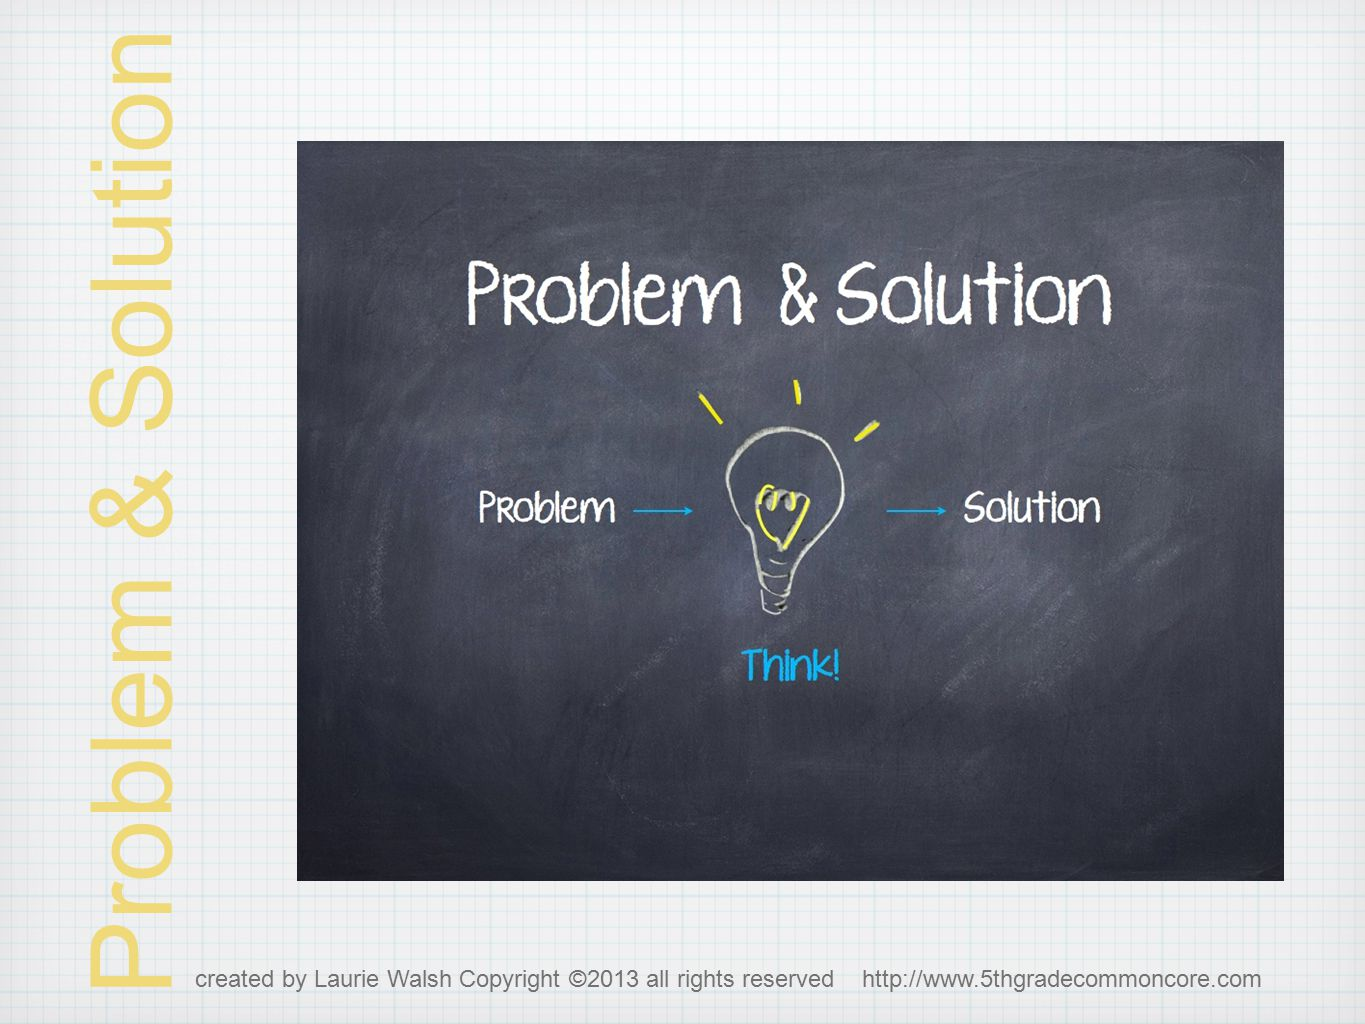 Problem & Solution created by Laurie Walsh Copyright ©2013 all rights reserved http://www.5thgradecommoncore.com